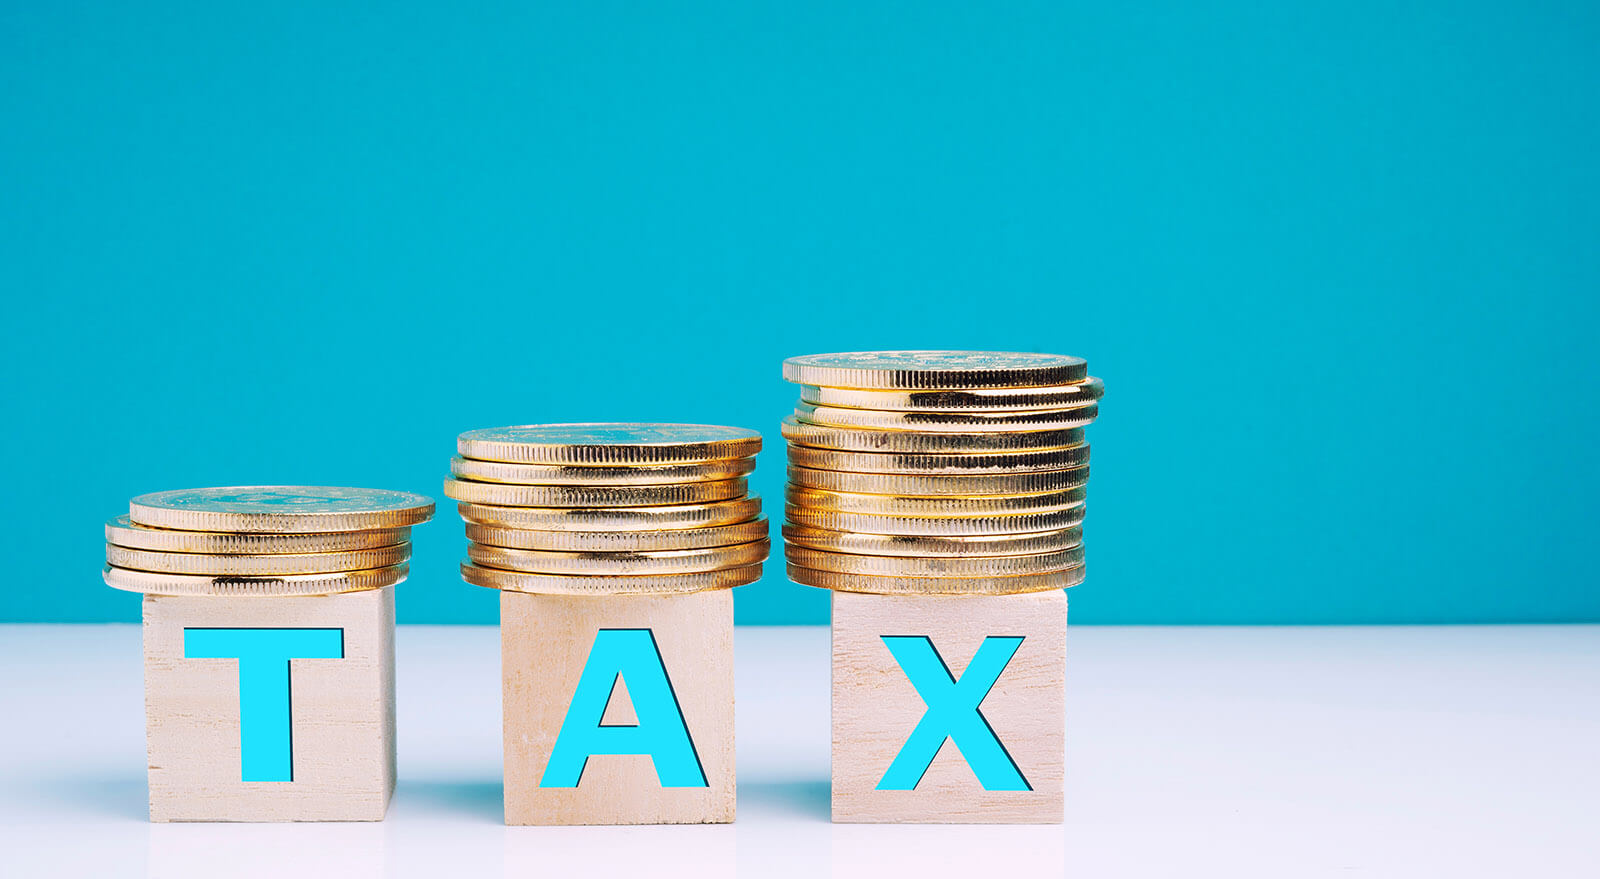 Tax Text On Wooden Blocks With Stacked Coins Over Table